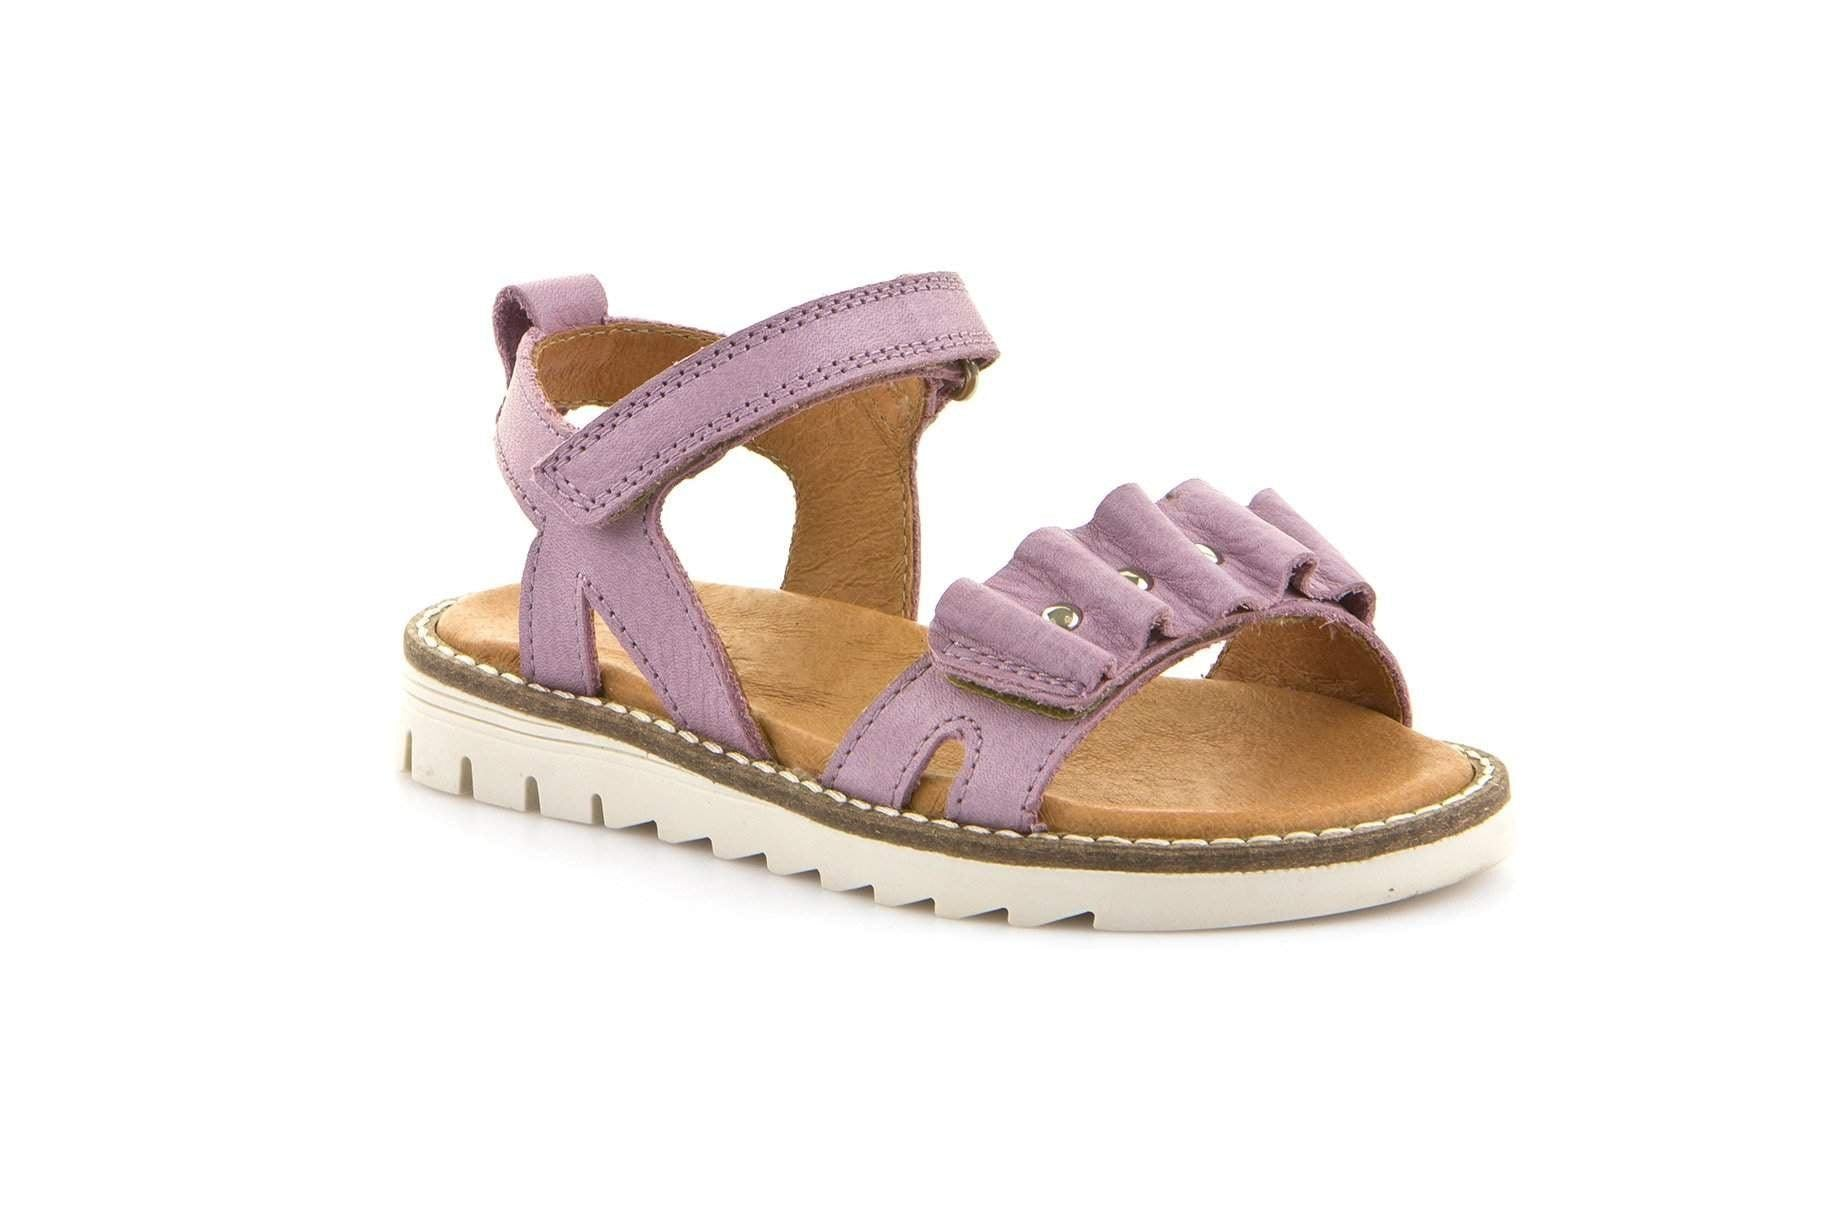 Froddo/G3150137-5/Lila/Girls Leather Sandals/Little Kid - ShoeKid.ca